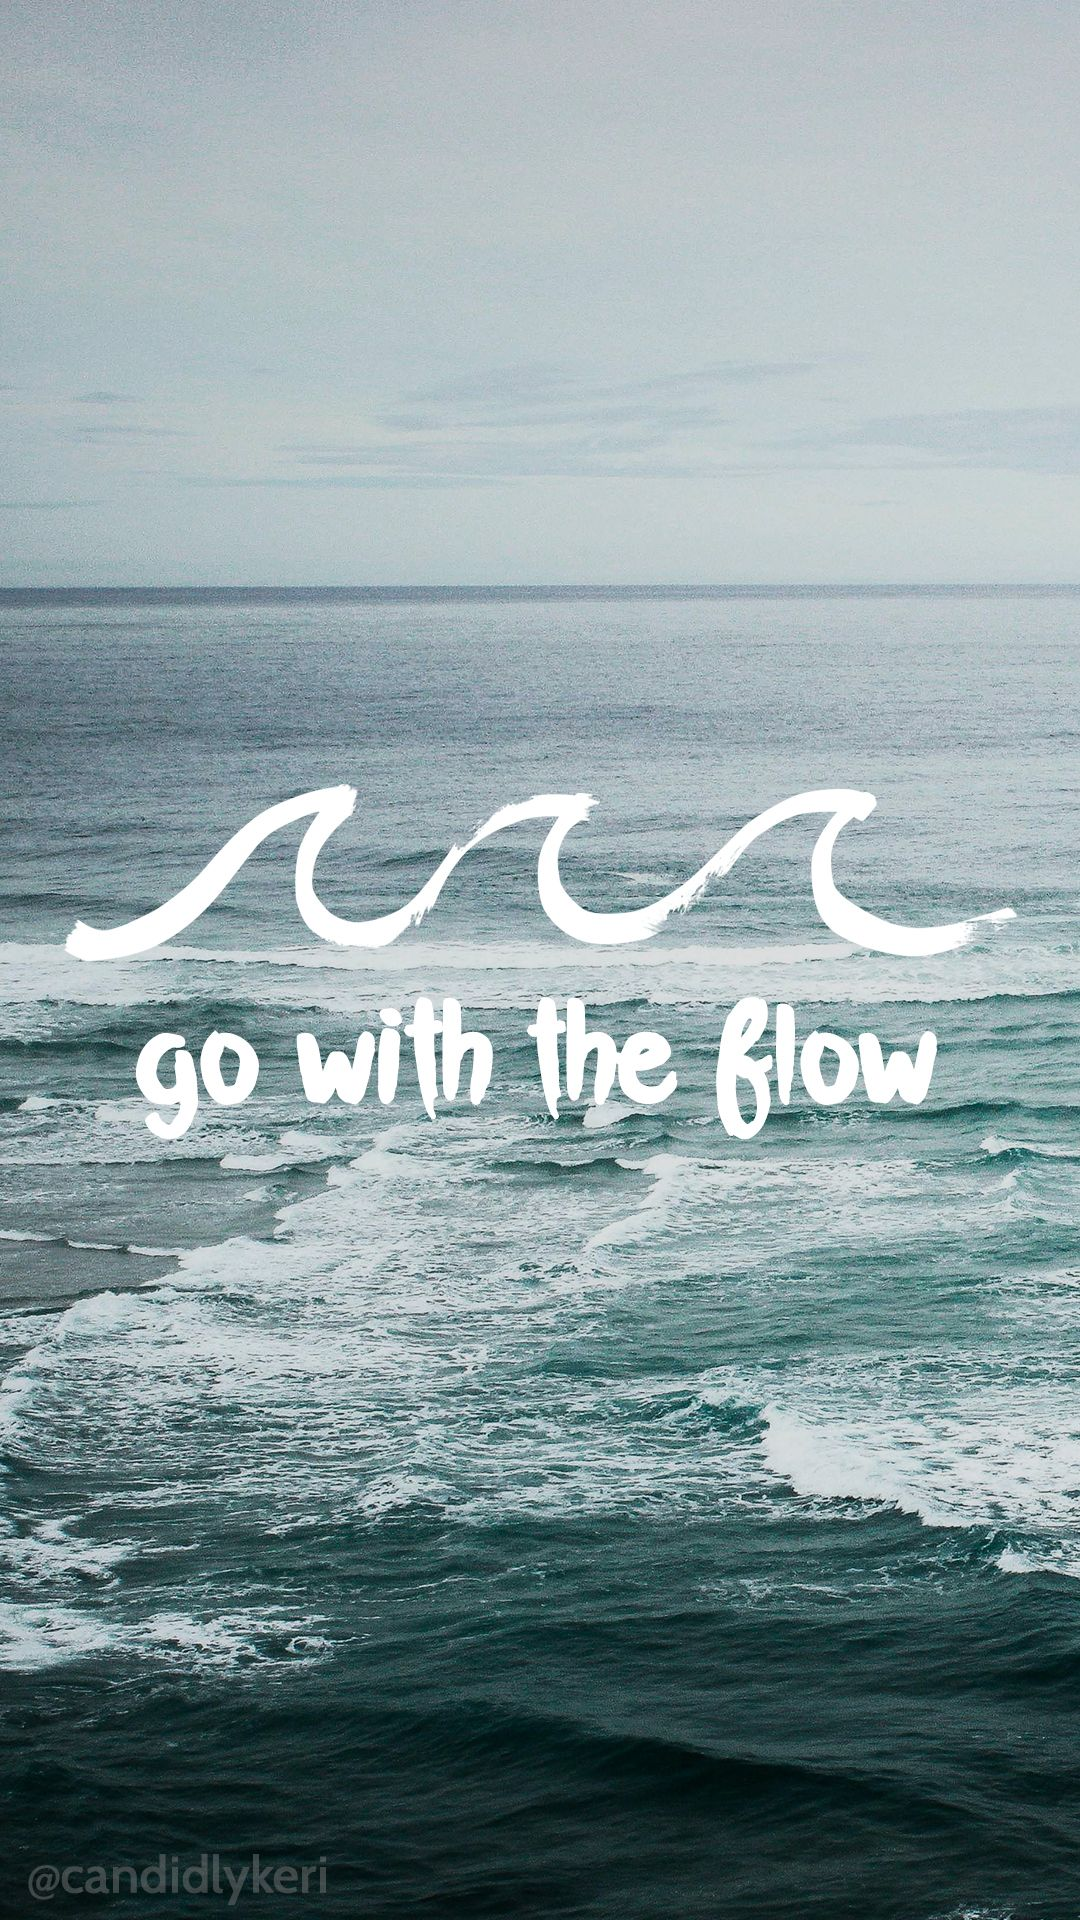 Go with the Flow water waves motivational wallpaper 2016